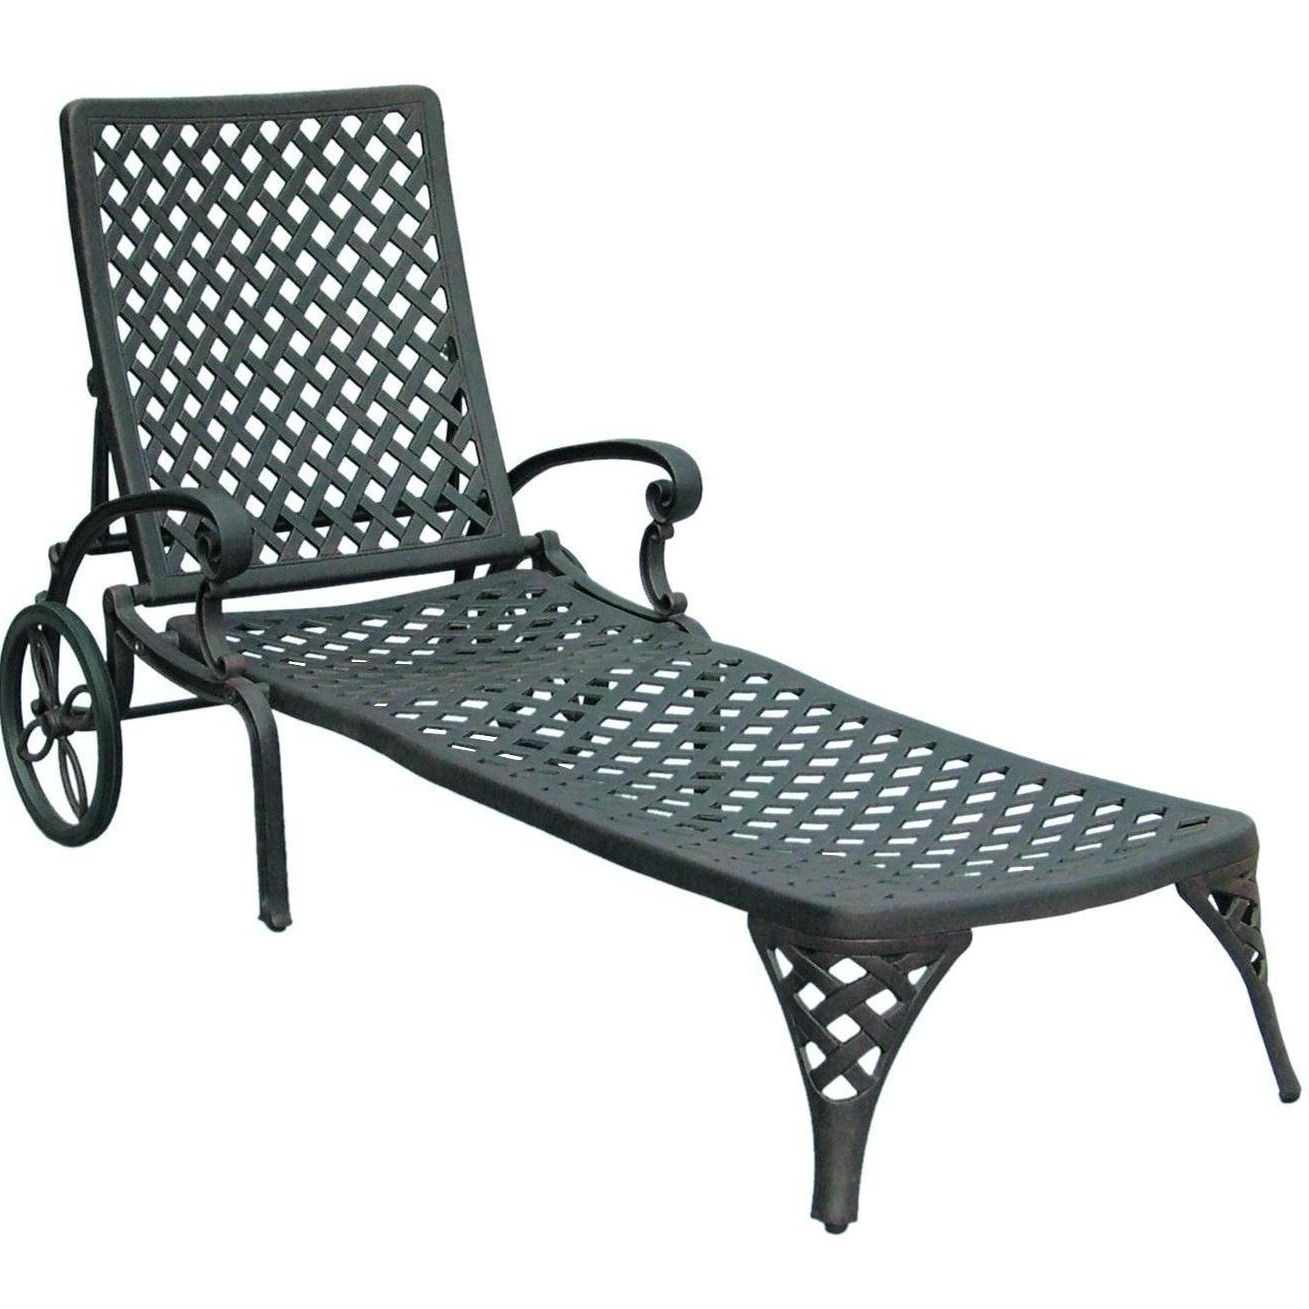 Featured Photo of Cast Aluminum Chaise Lounges With Wheels